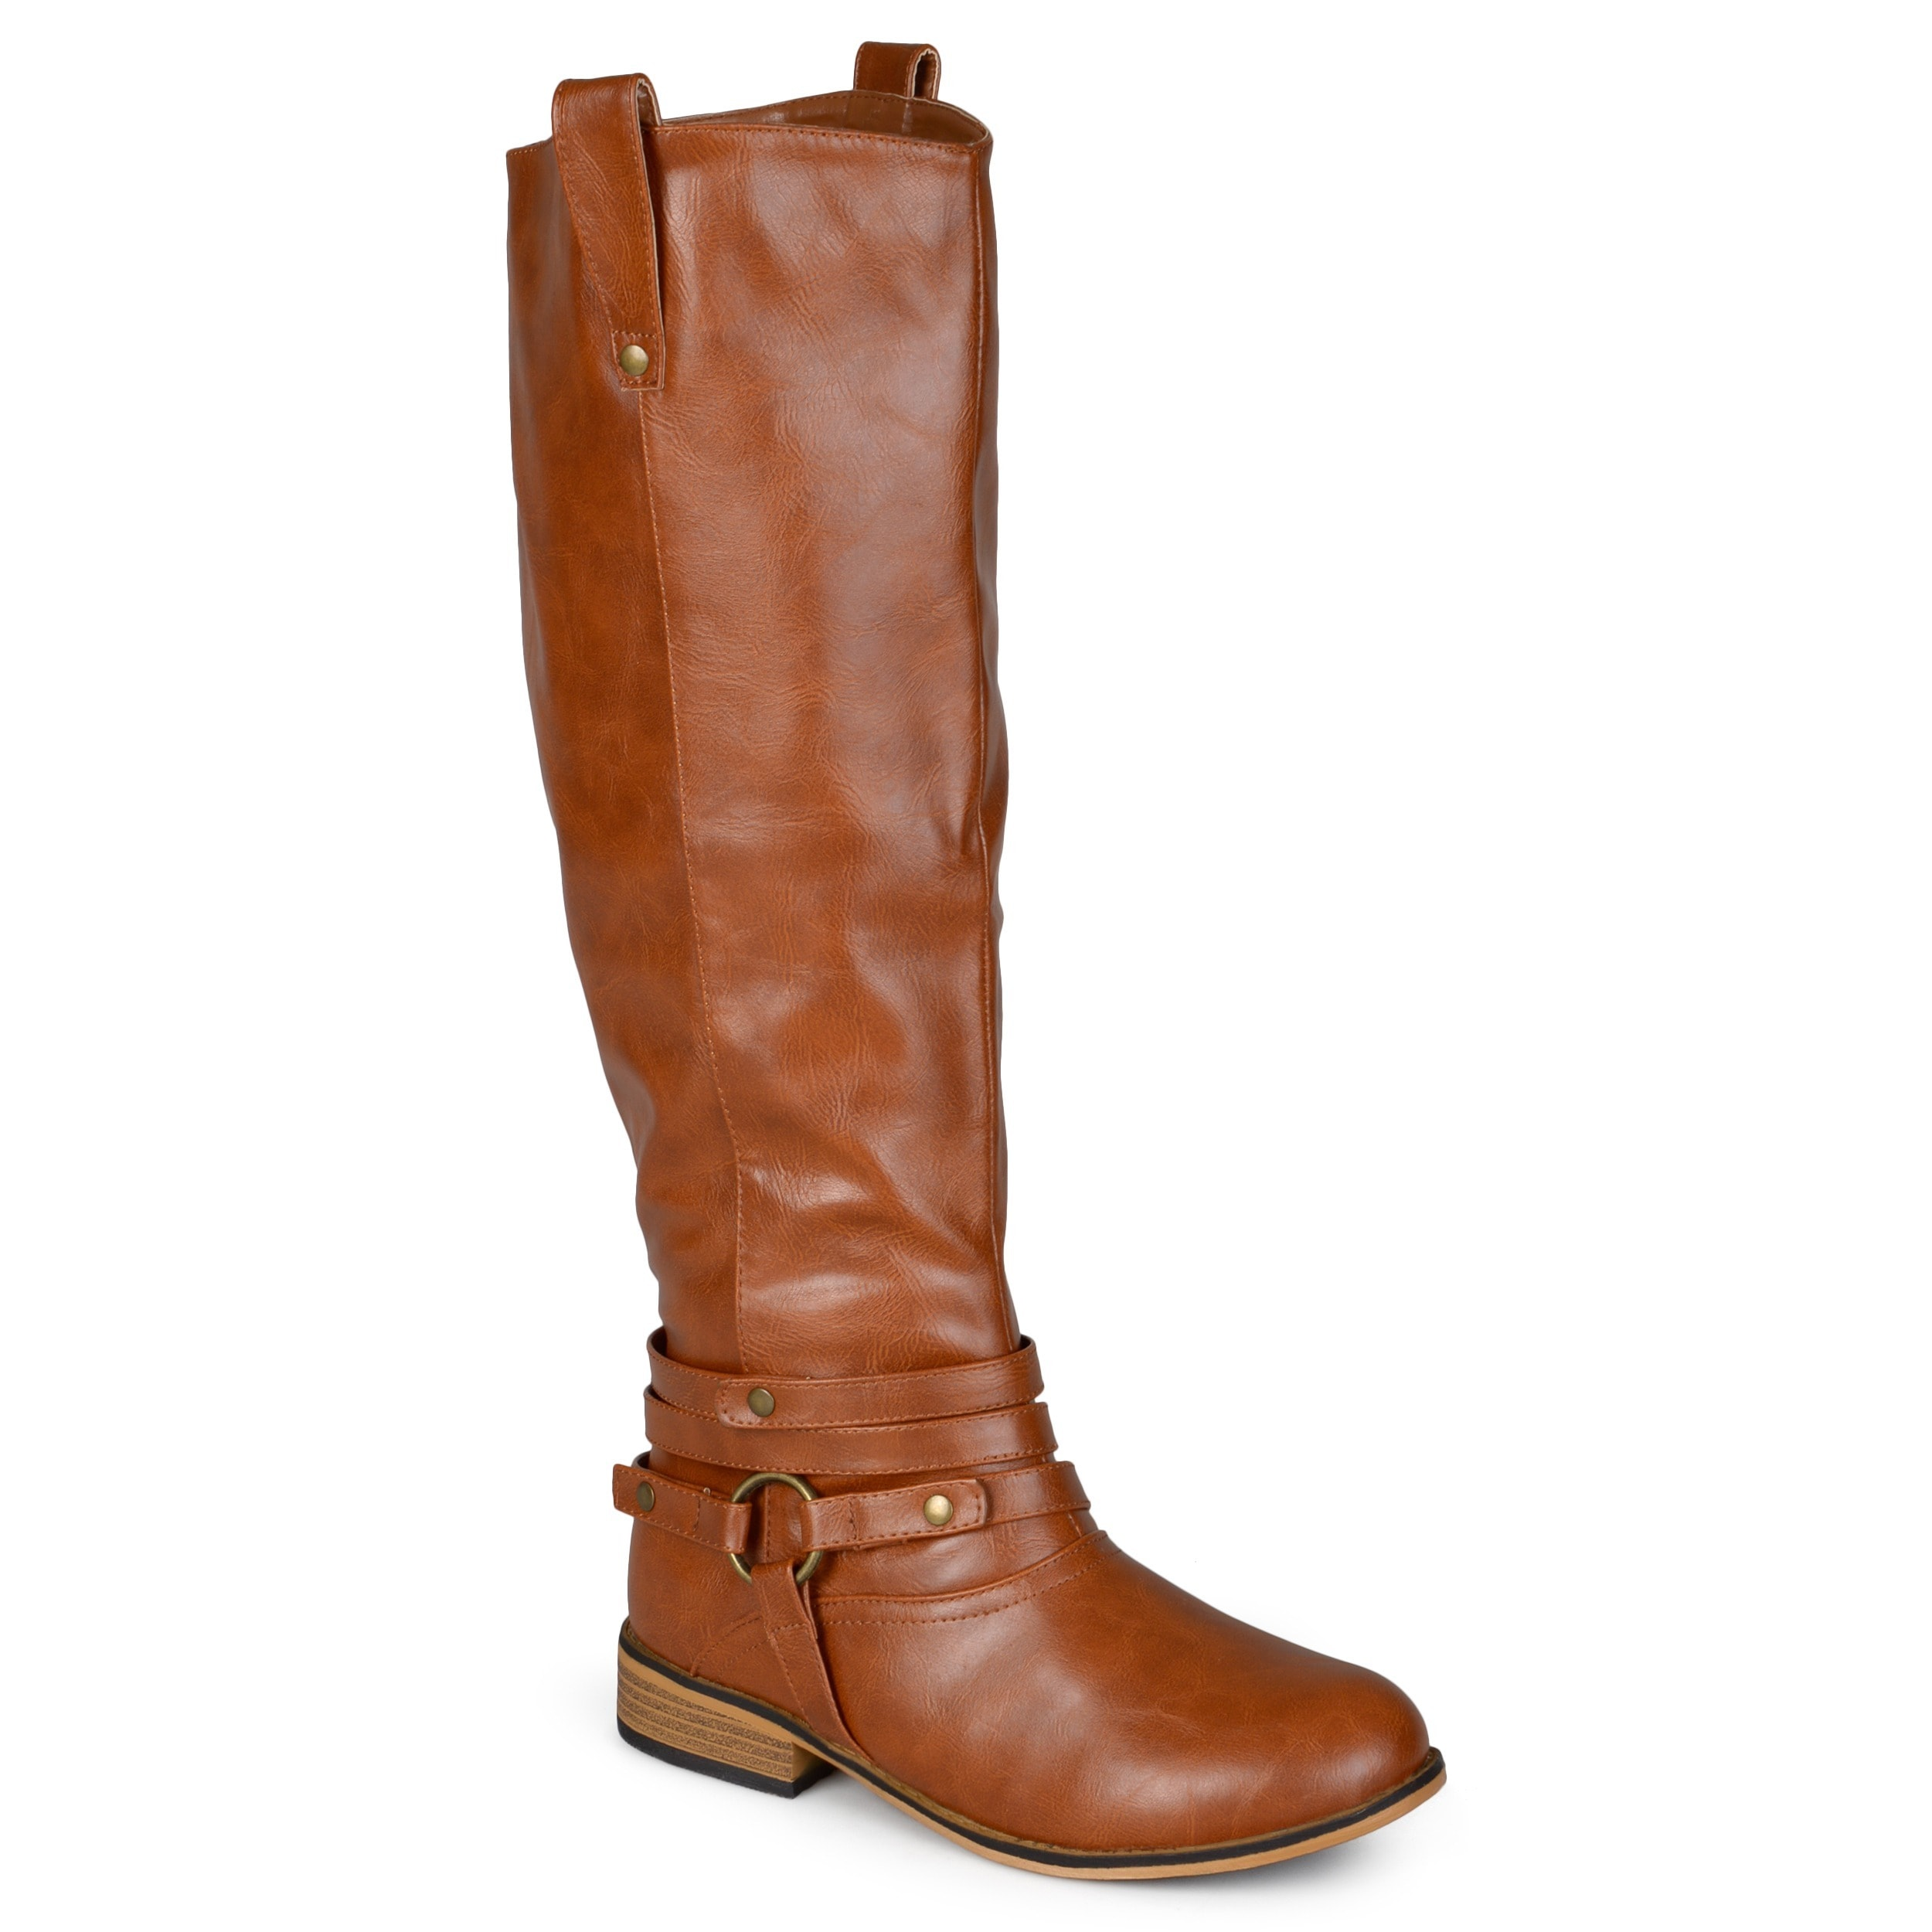 79d789ad2 Journee Collection Women's 'Walla' Regular and Wide-calf Ankle-strap Knee-high  Riding Boot